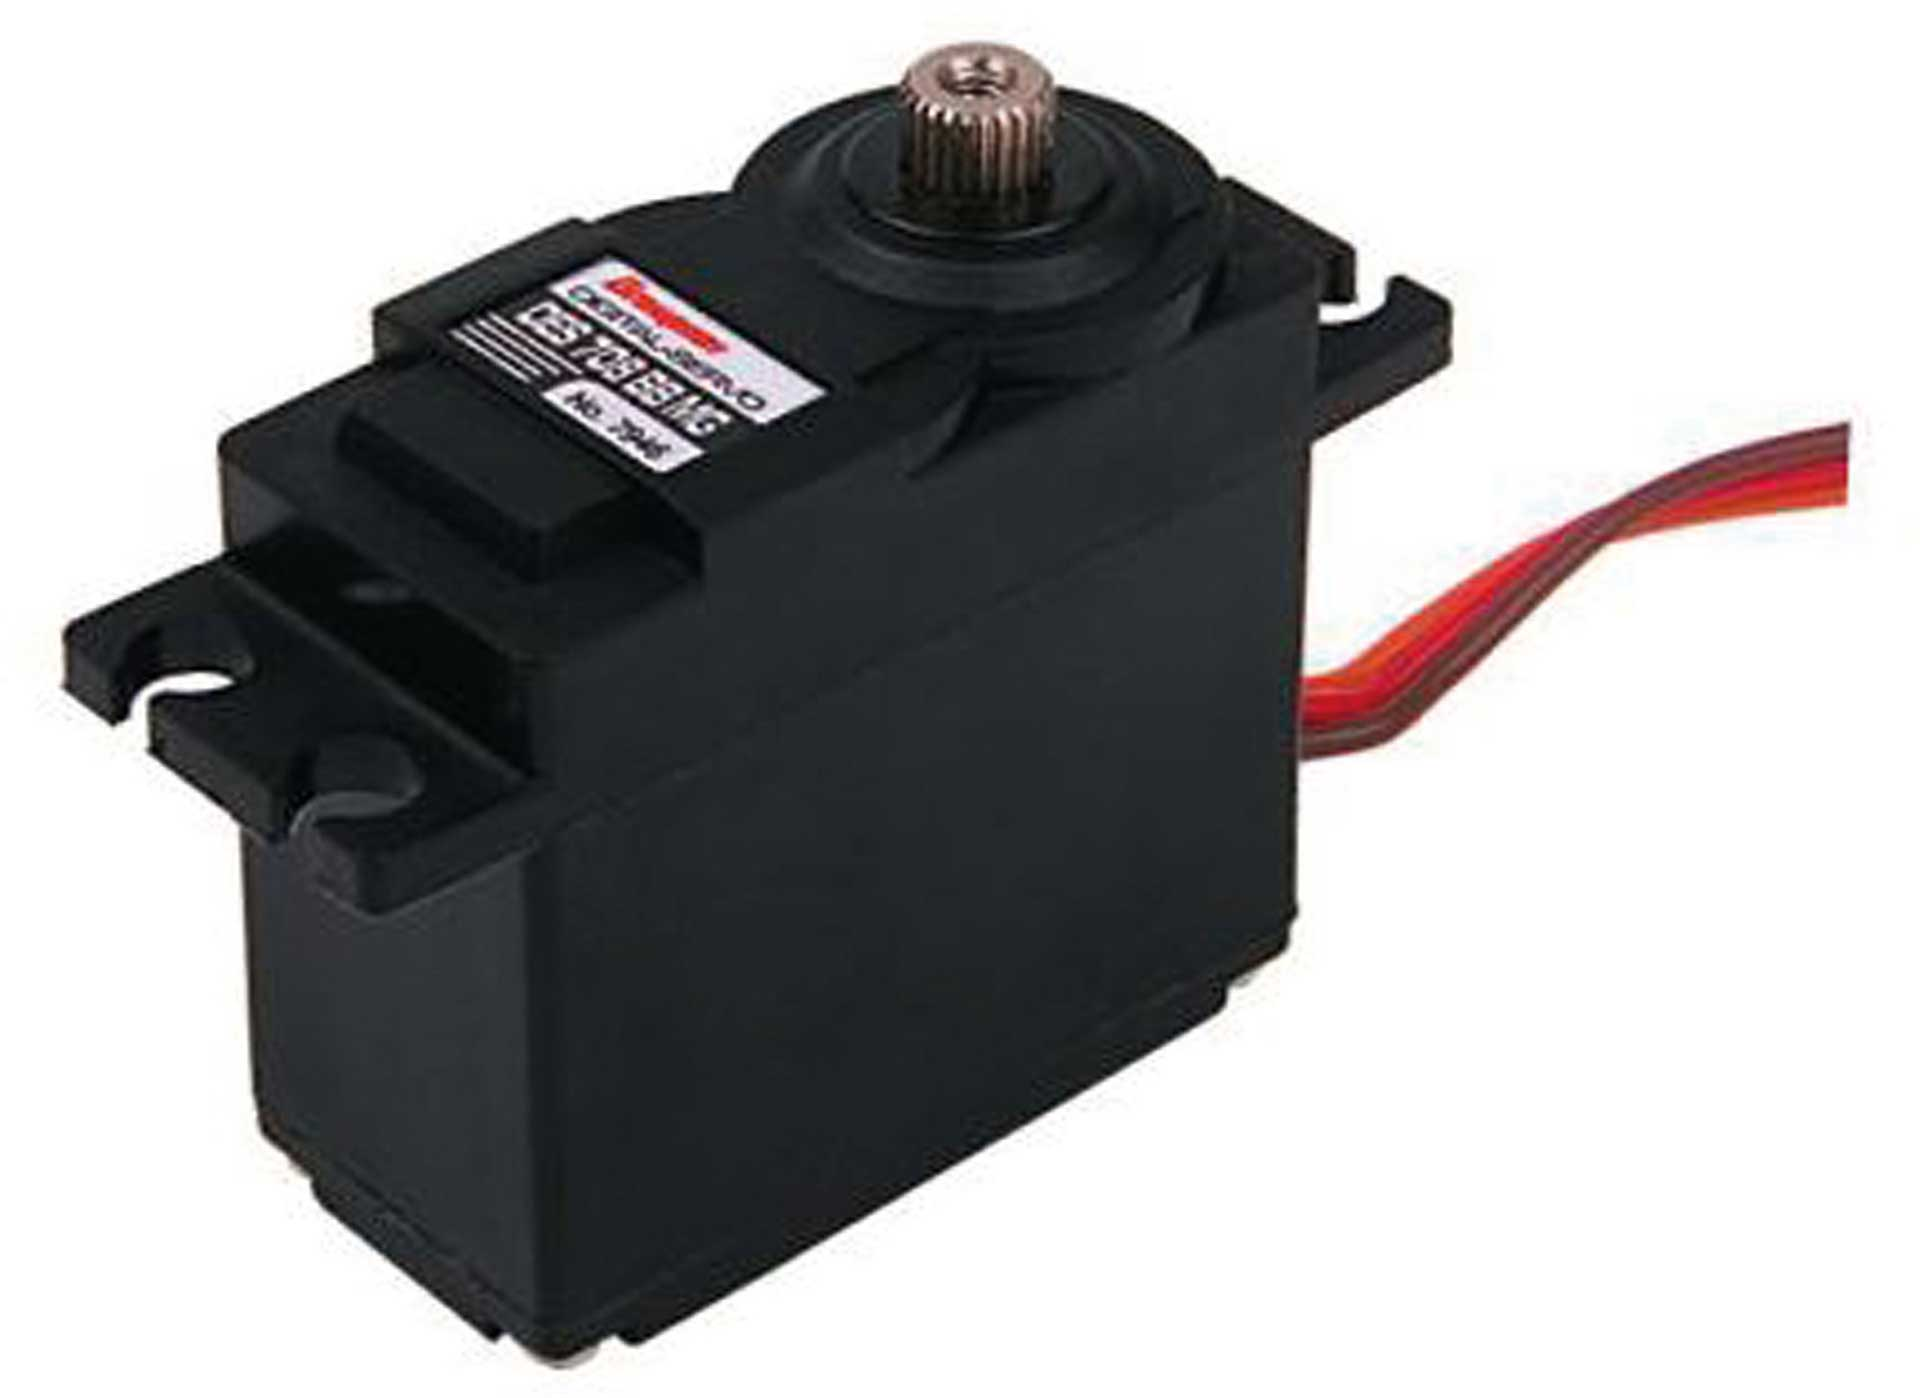 GRAUPNER DES 708 BB MG DIGITAL SERVO